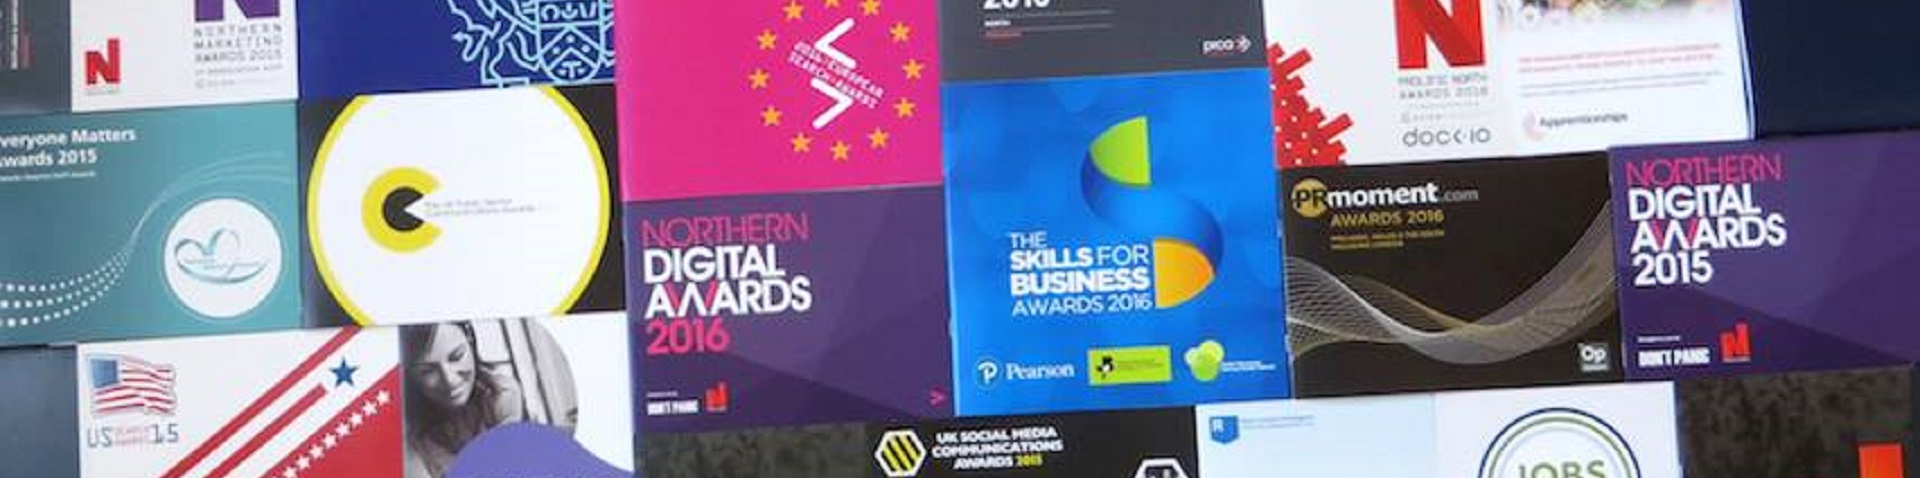 The Northern Digital Awards